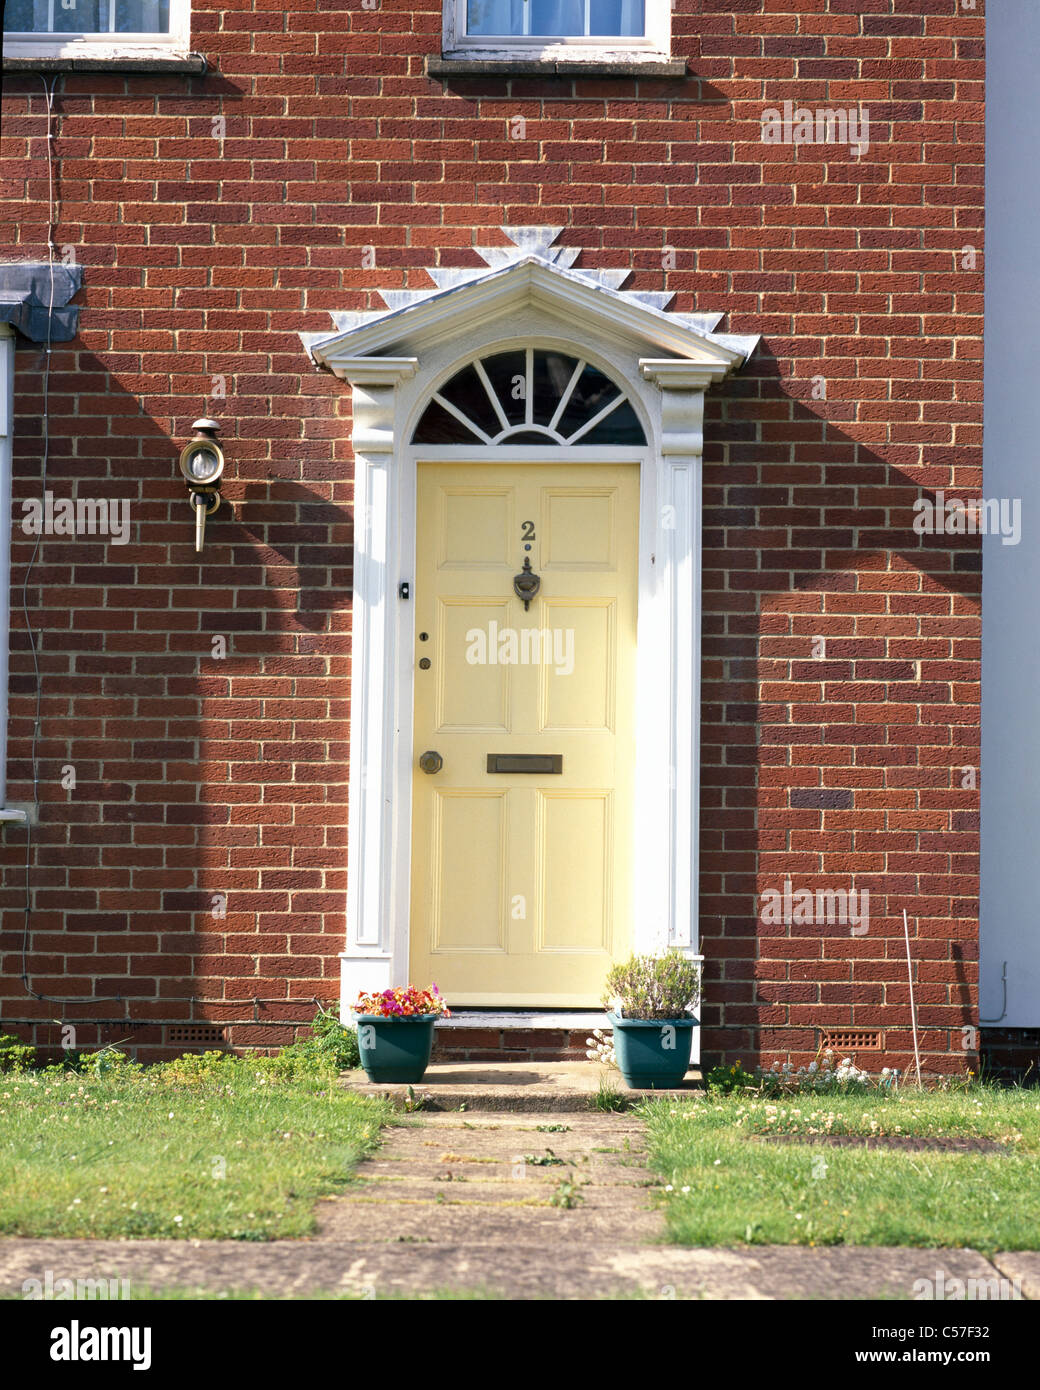 Doors   Modern Red Brick House With Mock Georgian Yellow Painted Wooden Door  Flanked By Columns And With Fanlight Above.